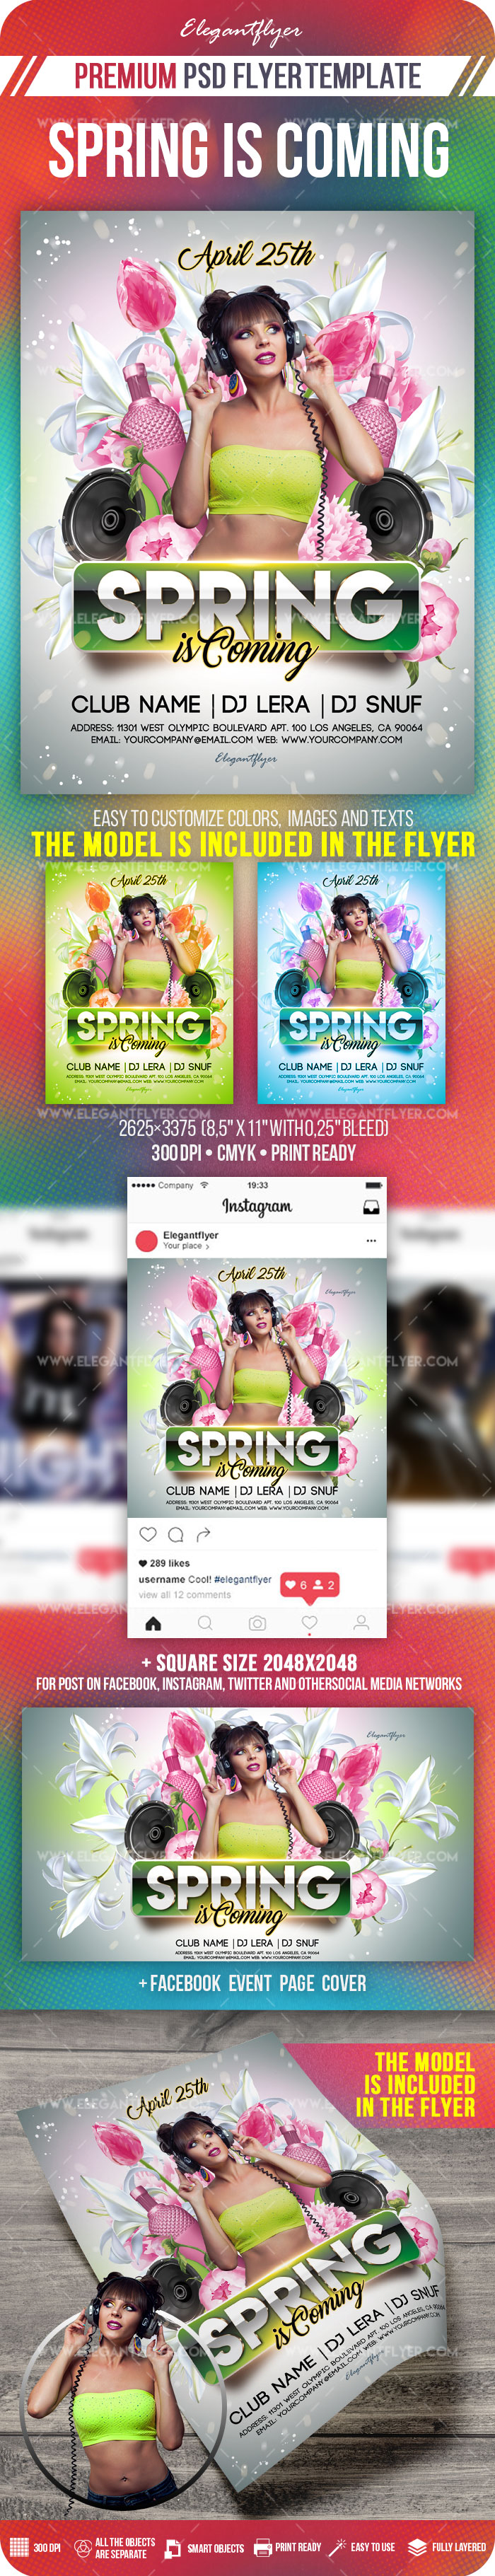 Spring is Coming – Flyer PSD Template + Facebook Cover + Instagram Post